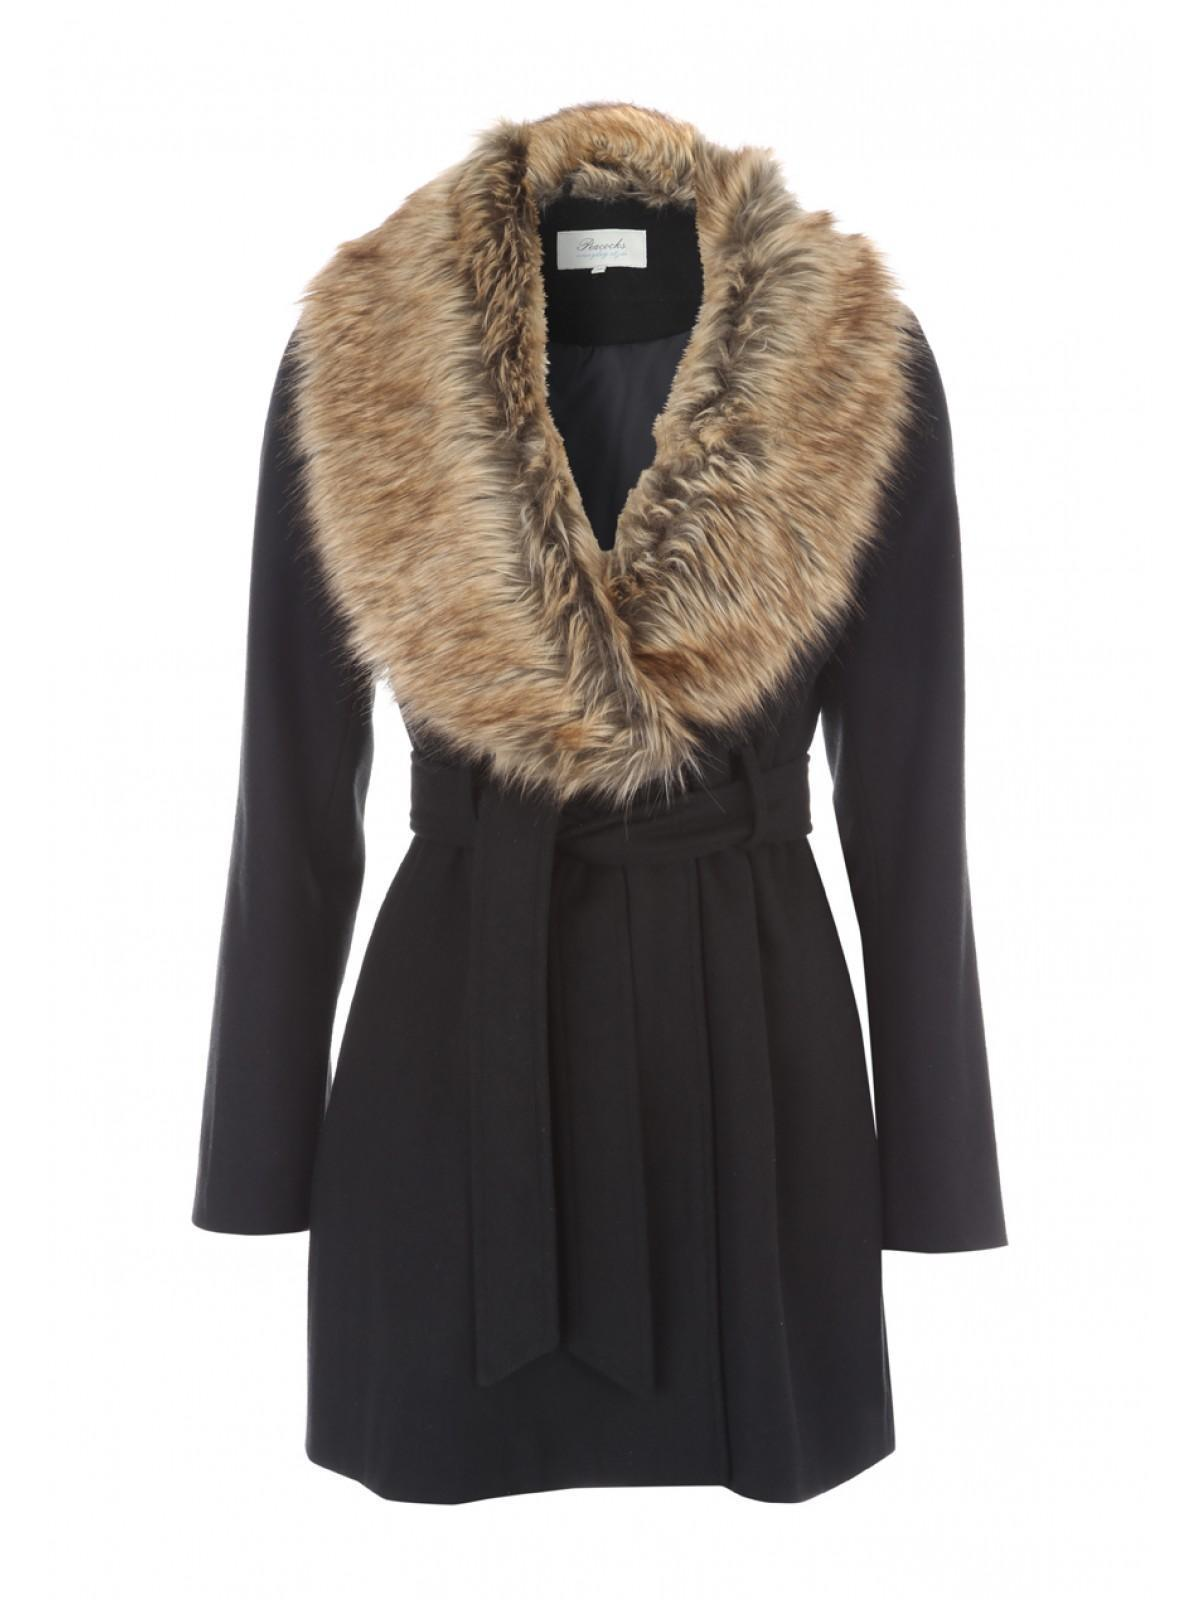 Womens Belted Faux Fur Collar Coat | Peacocks